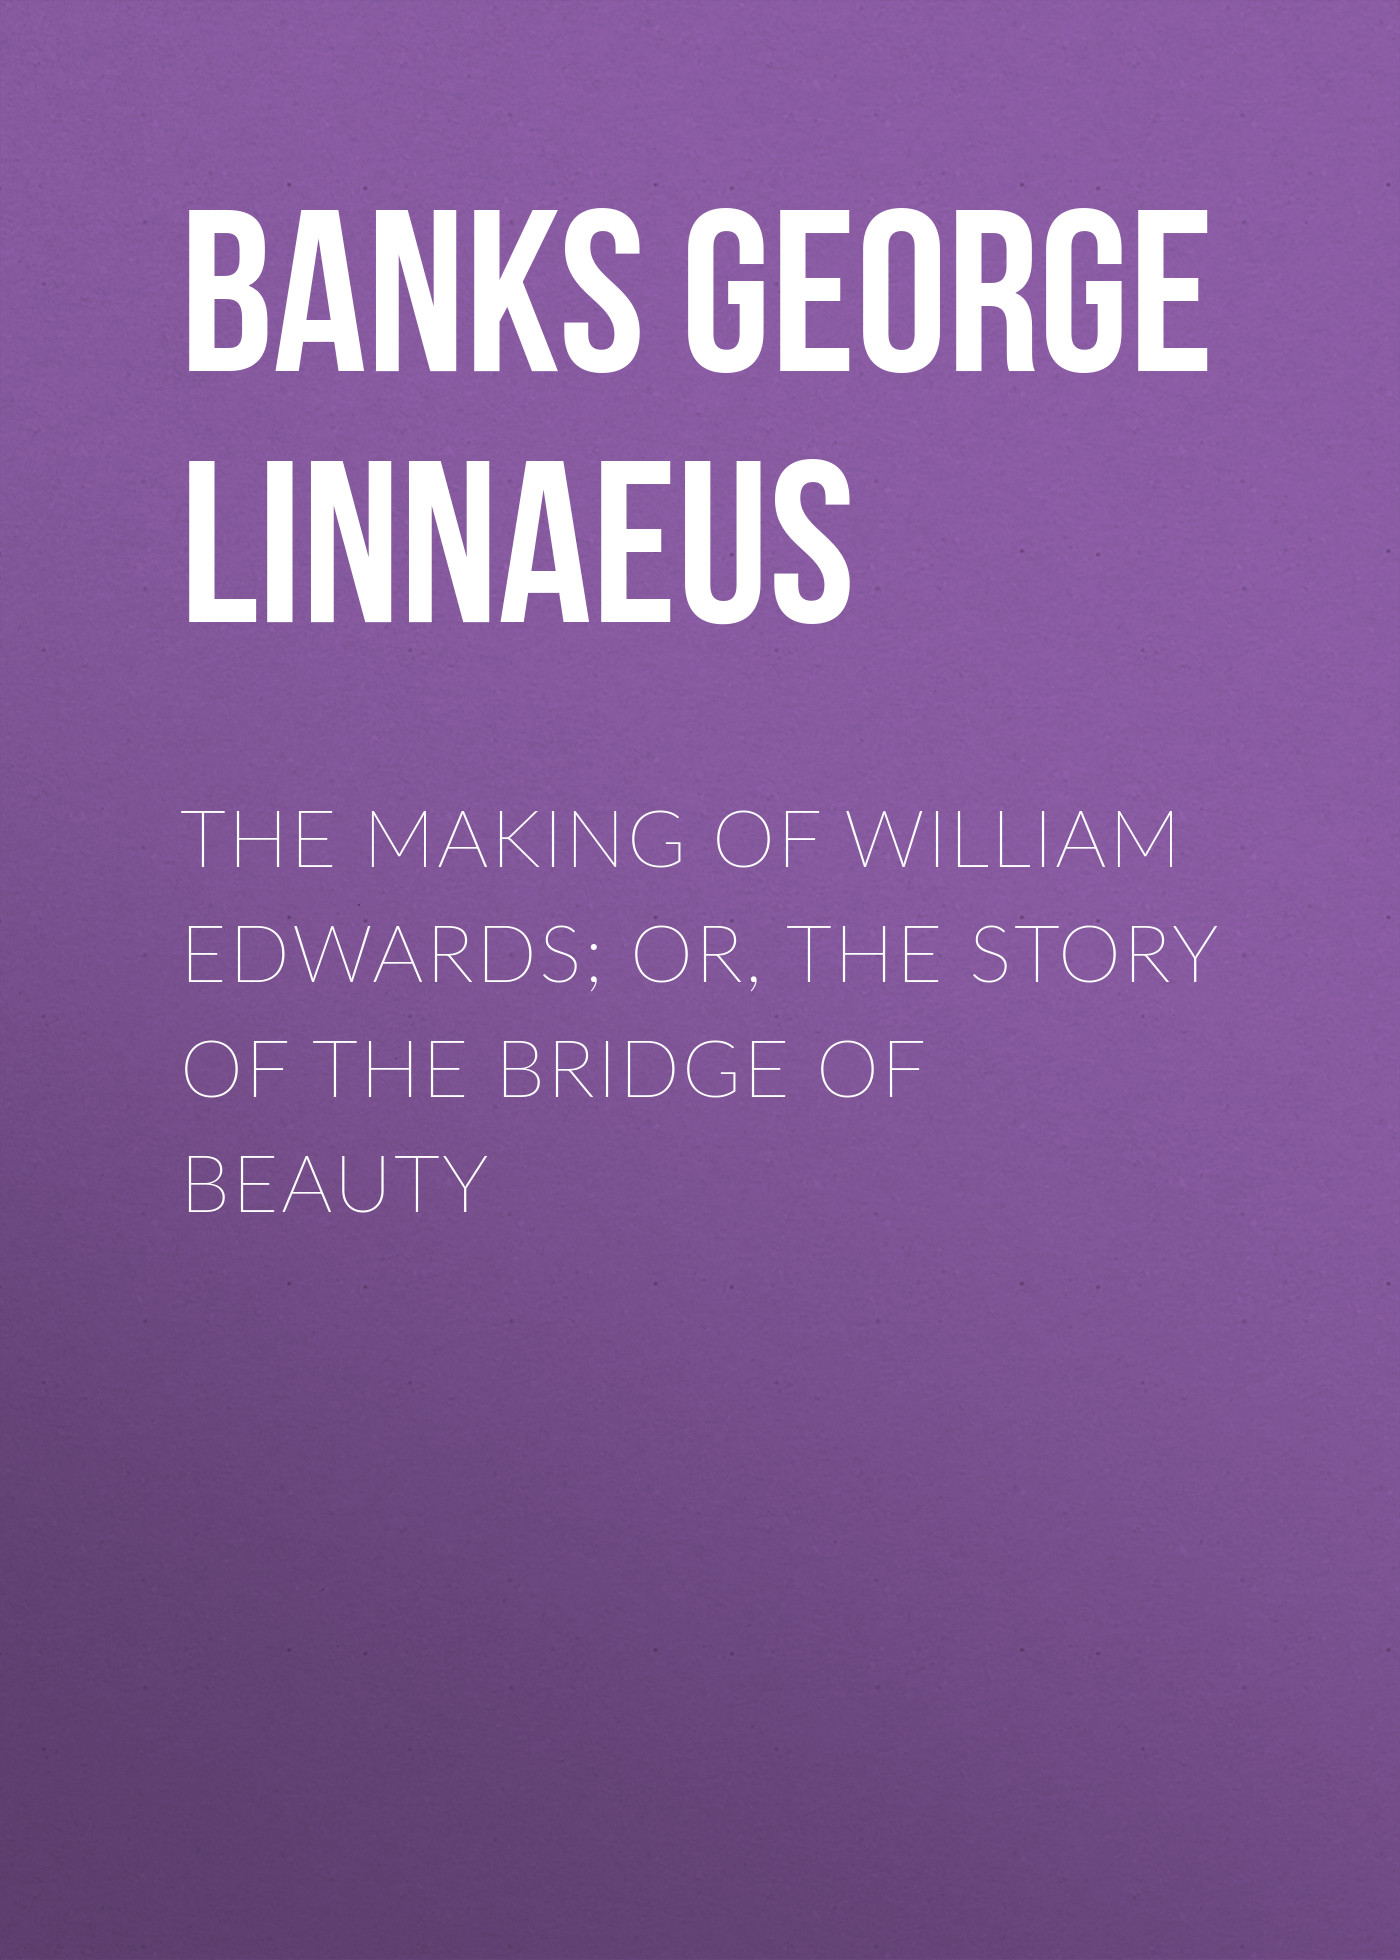 Фото - Banks George Linnaeus The Making of William Edwards; or, The Story of the Bridge of Beauty the making of modern japan